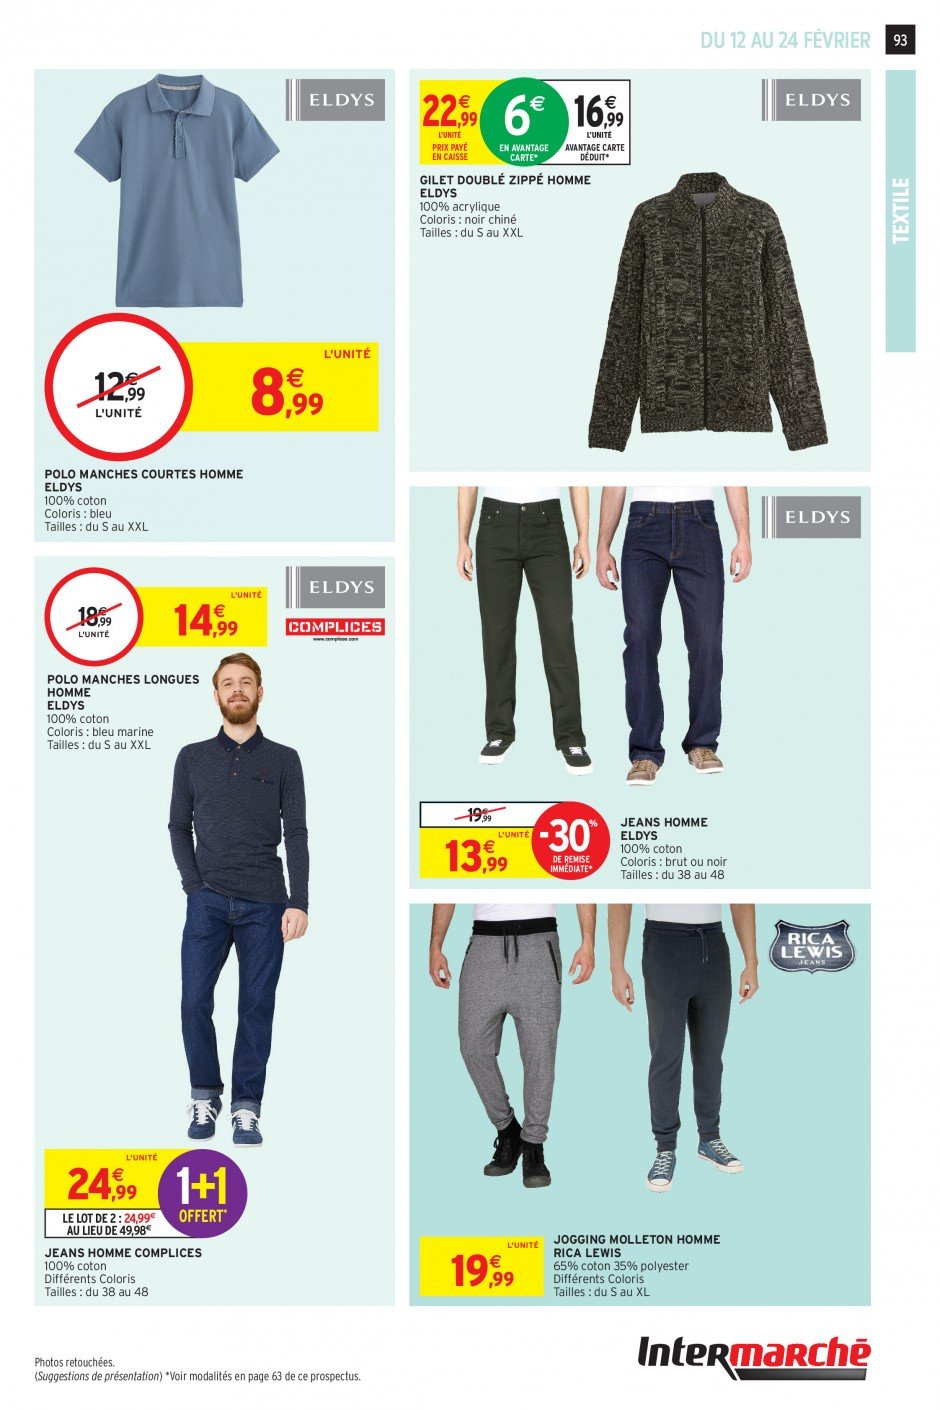 Catalogue Intermarché - 12.02.2019 - 24.02.2019. Page 91.